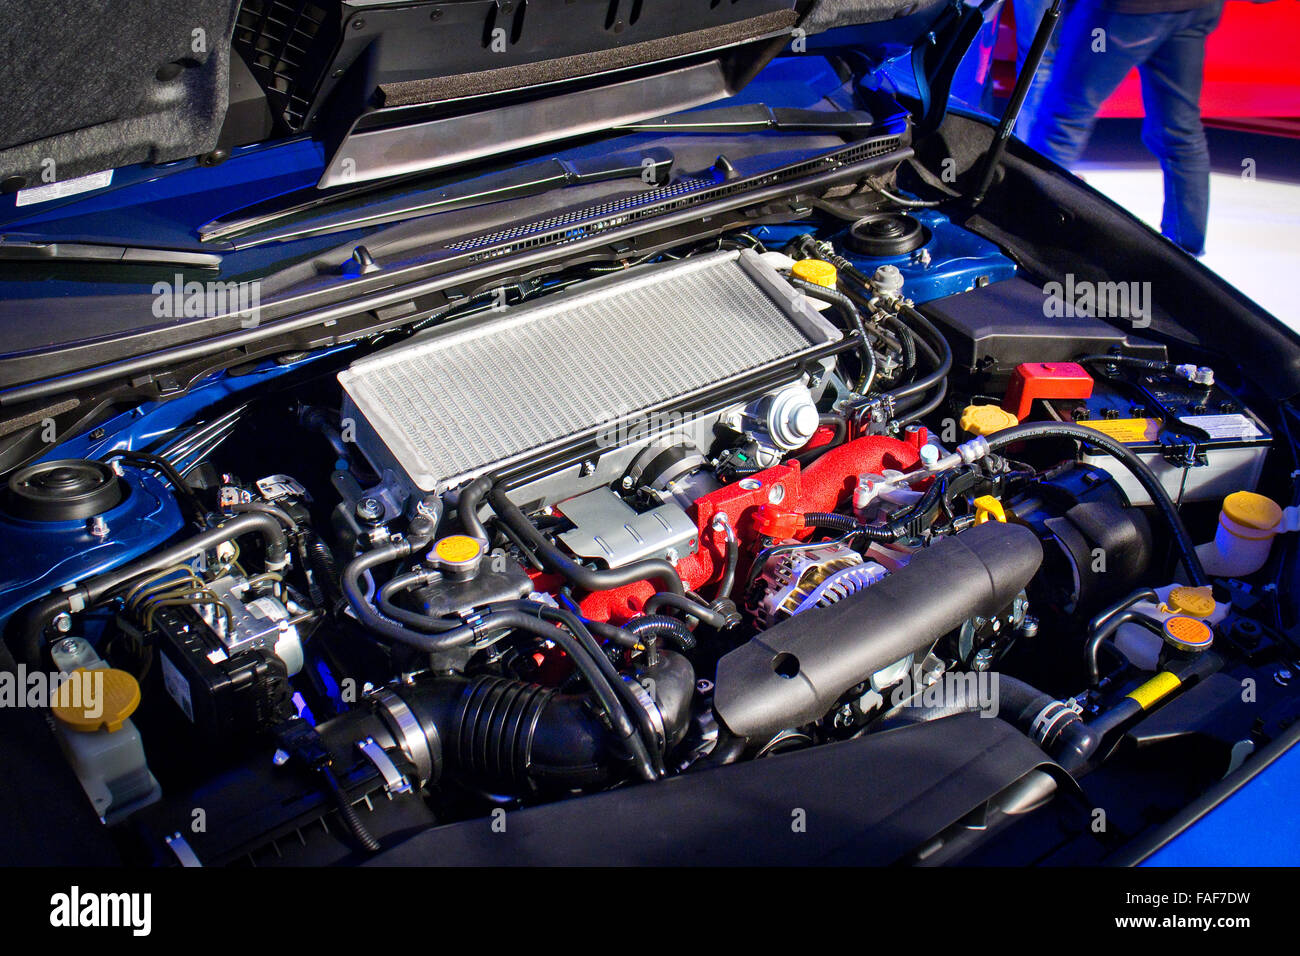 Hong Kong, China April 8, 2014 : Subaru WRX STI 2014 2015 Model engine on April 8 2014 in Hong Kong. - Stock Image